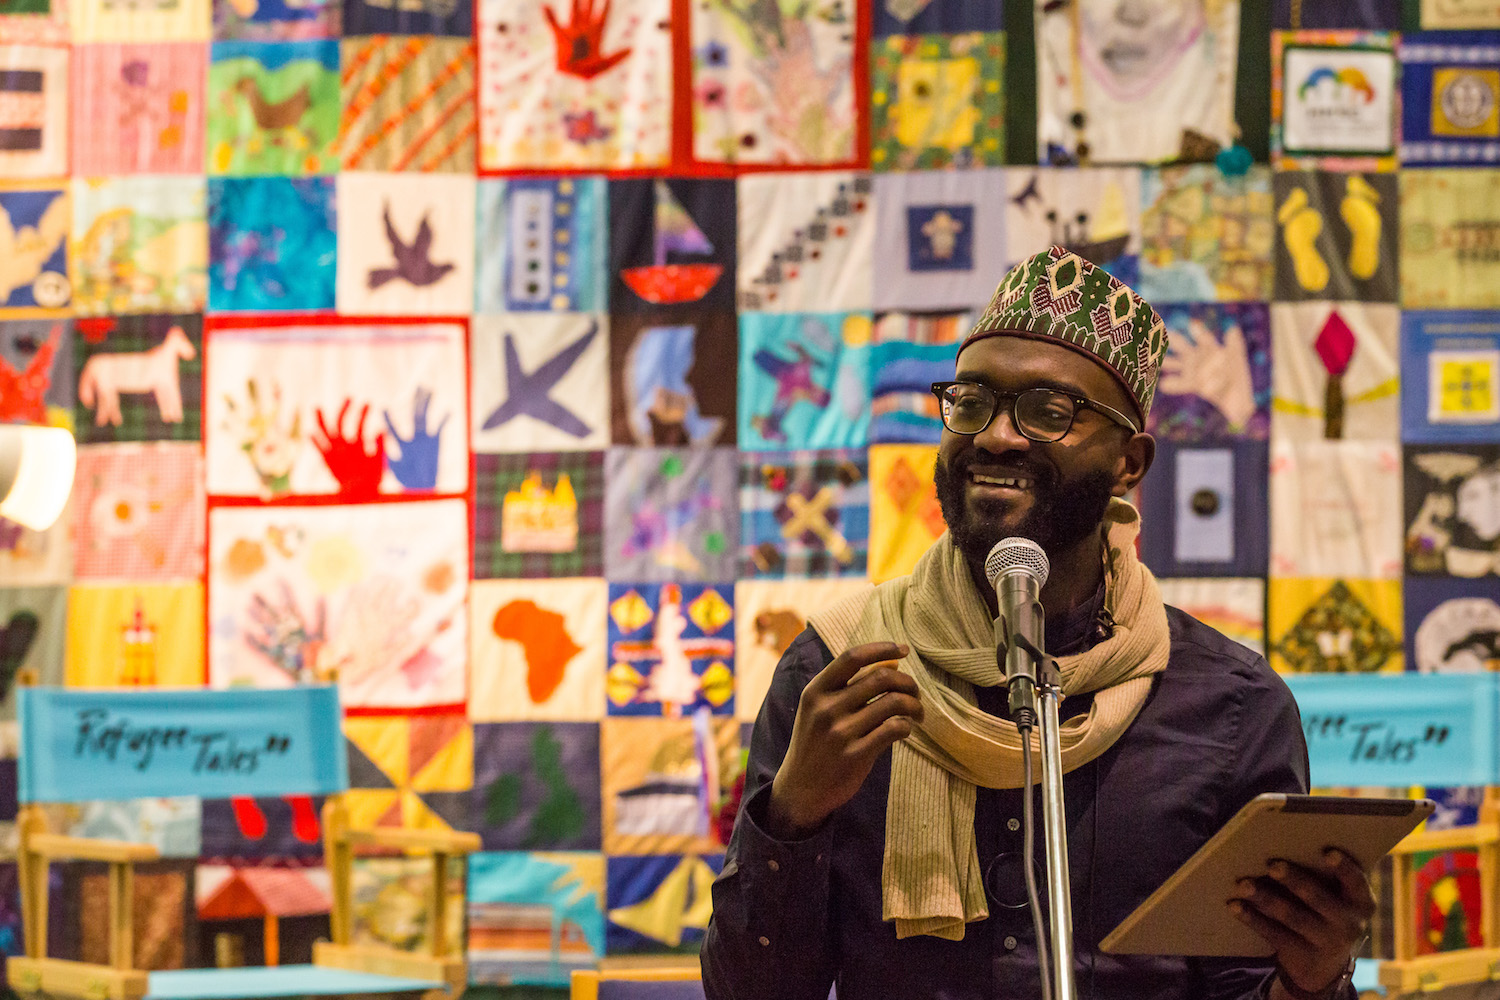 Poet, playwright and writer Inua Ellams reading for Refugee Tales in front of quilt made by Gatwick Detainees Welfare Group Quilt presented by Andrea Luka Zimmerman in The London Open 2018. Courtesy Gatwick Detainees Welfare Group and Refugee Tales. Photo by Chris Orange